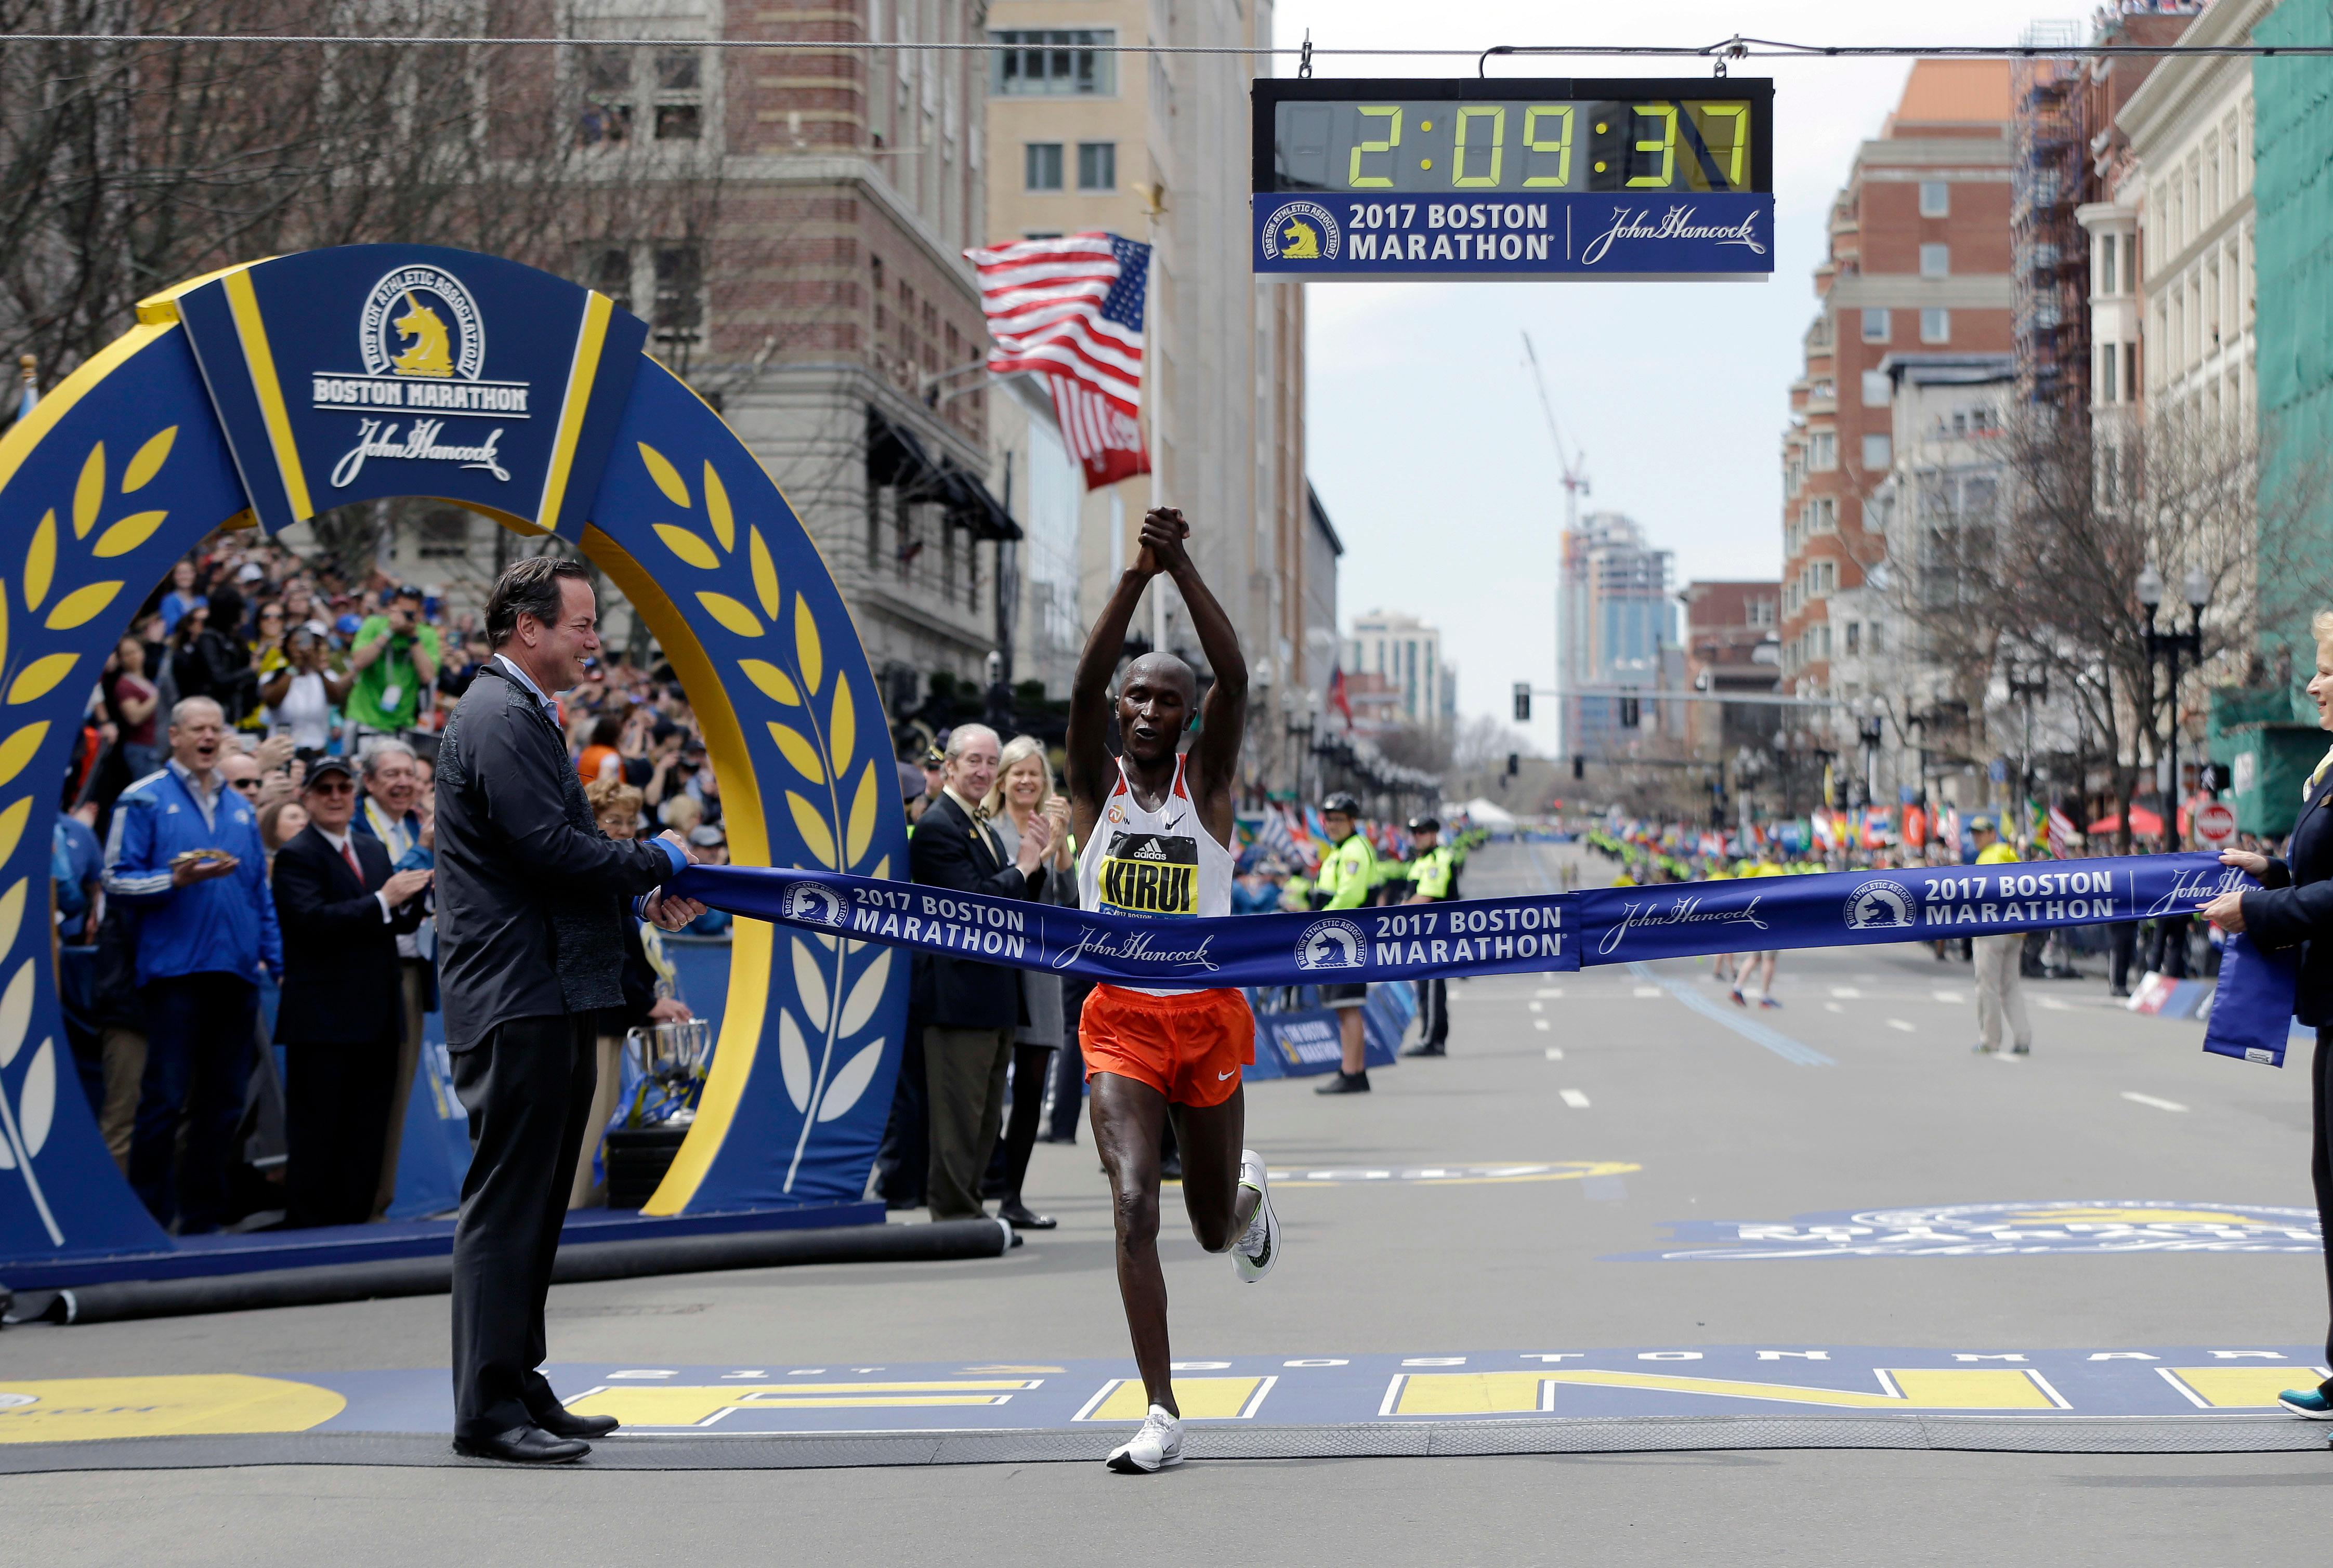 Geoffrey Kirui, of Kenya, crosses the finish line to win the 121st Boston Marathon on Monday, April 17, 2017, in Boston. (AP Photo/Elise Amendola)